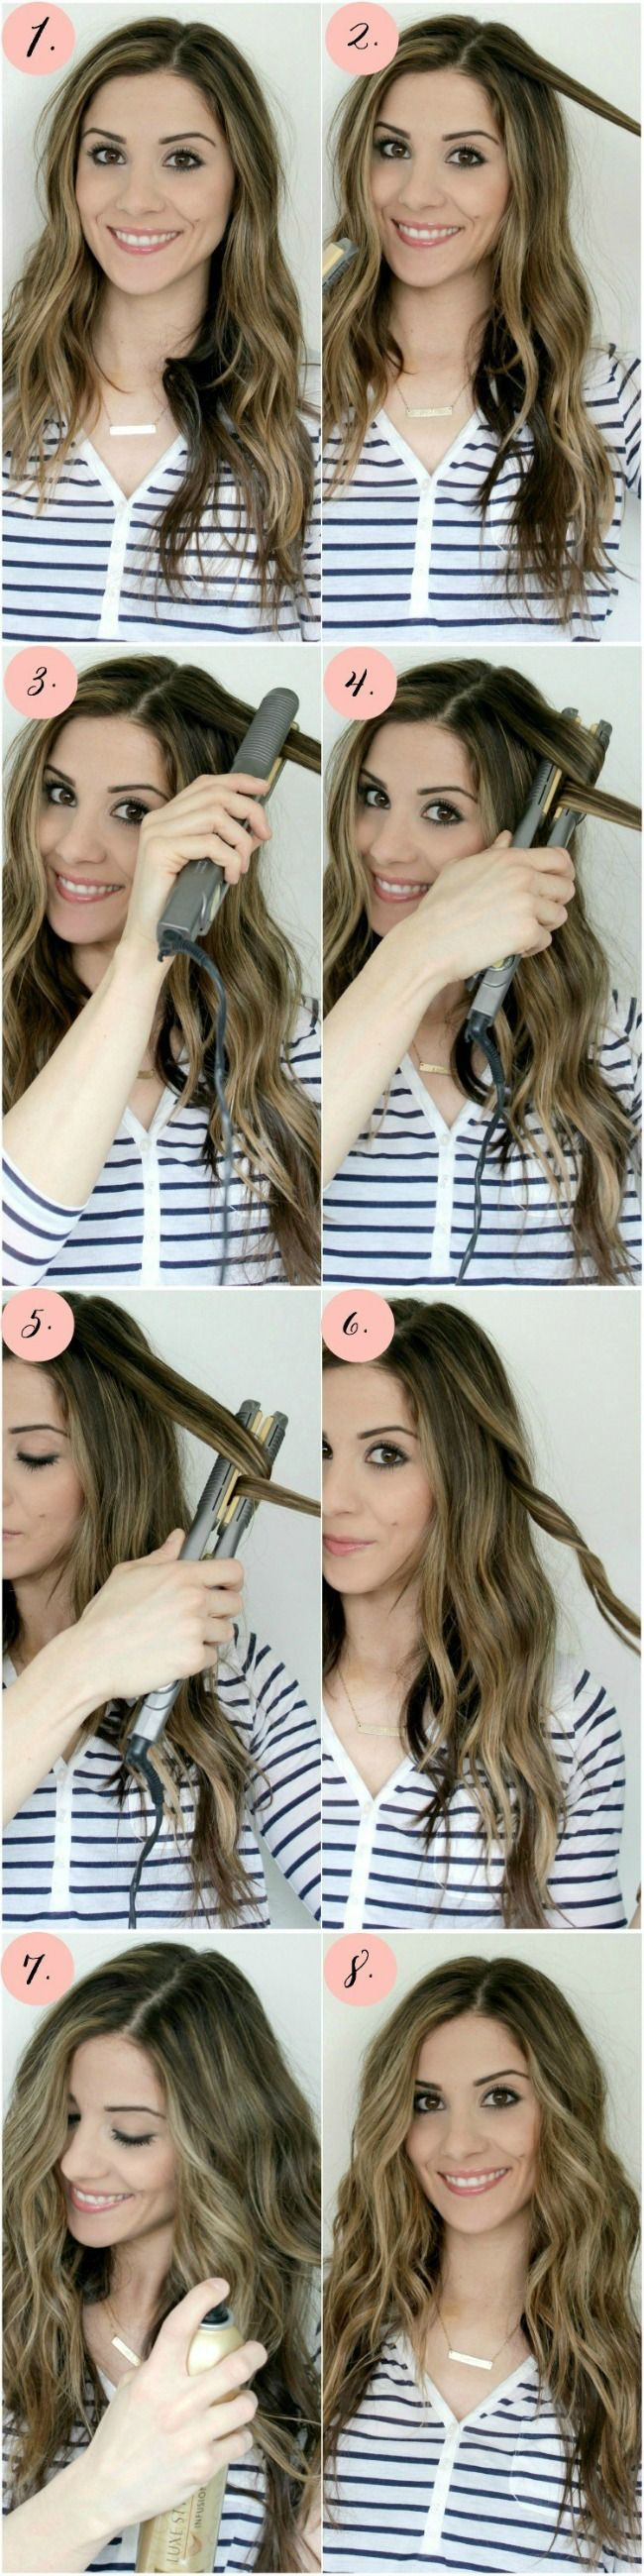 Most people think that flat irons only achieve sleek straight hair ...